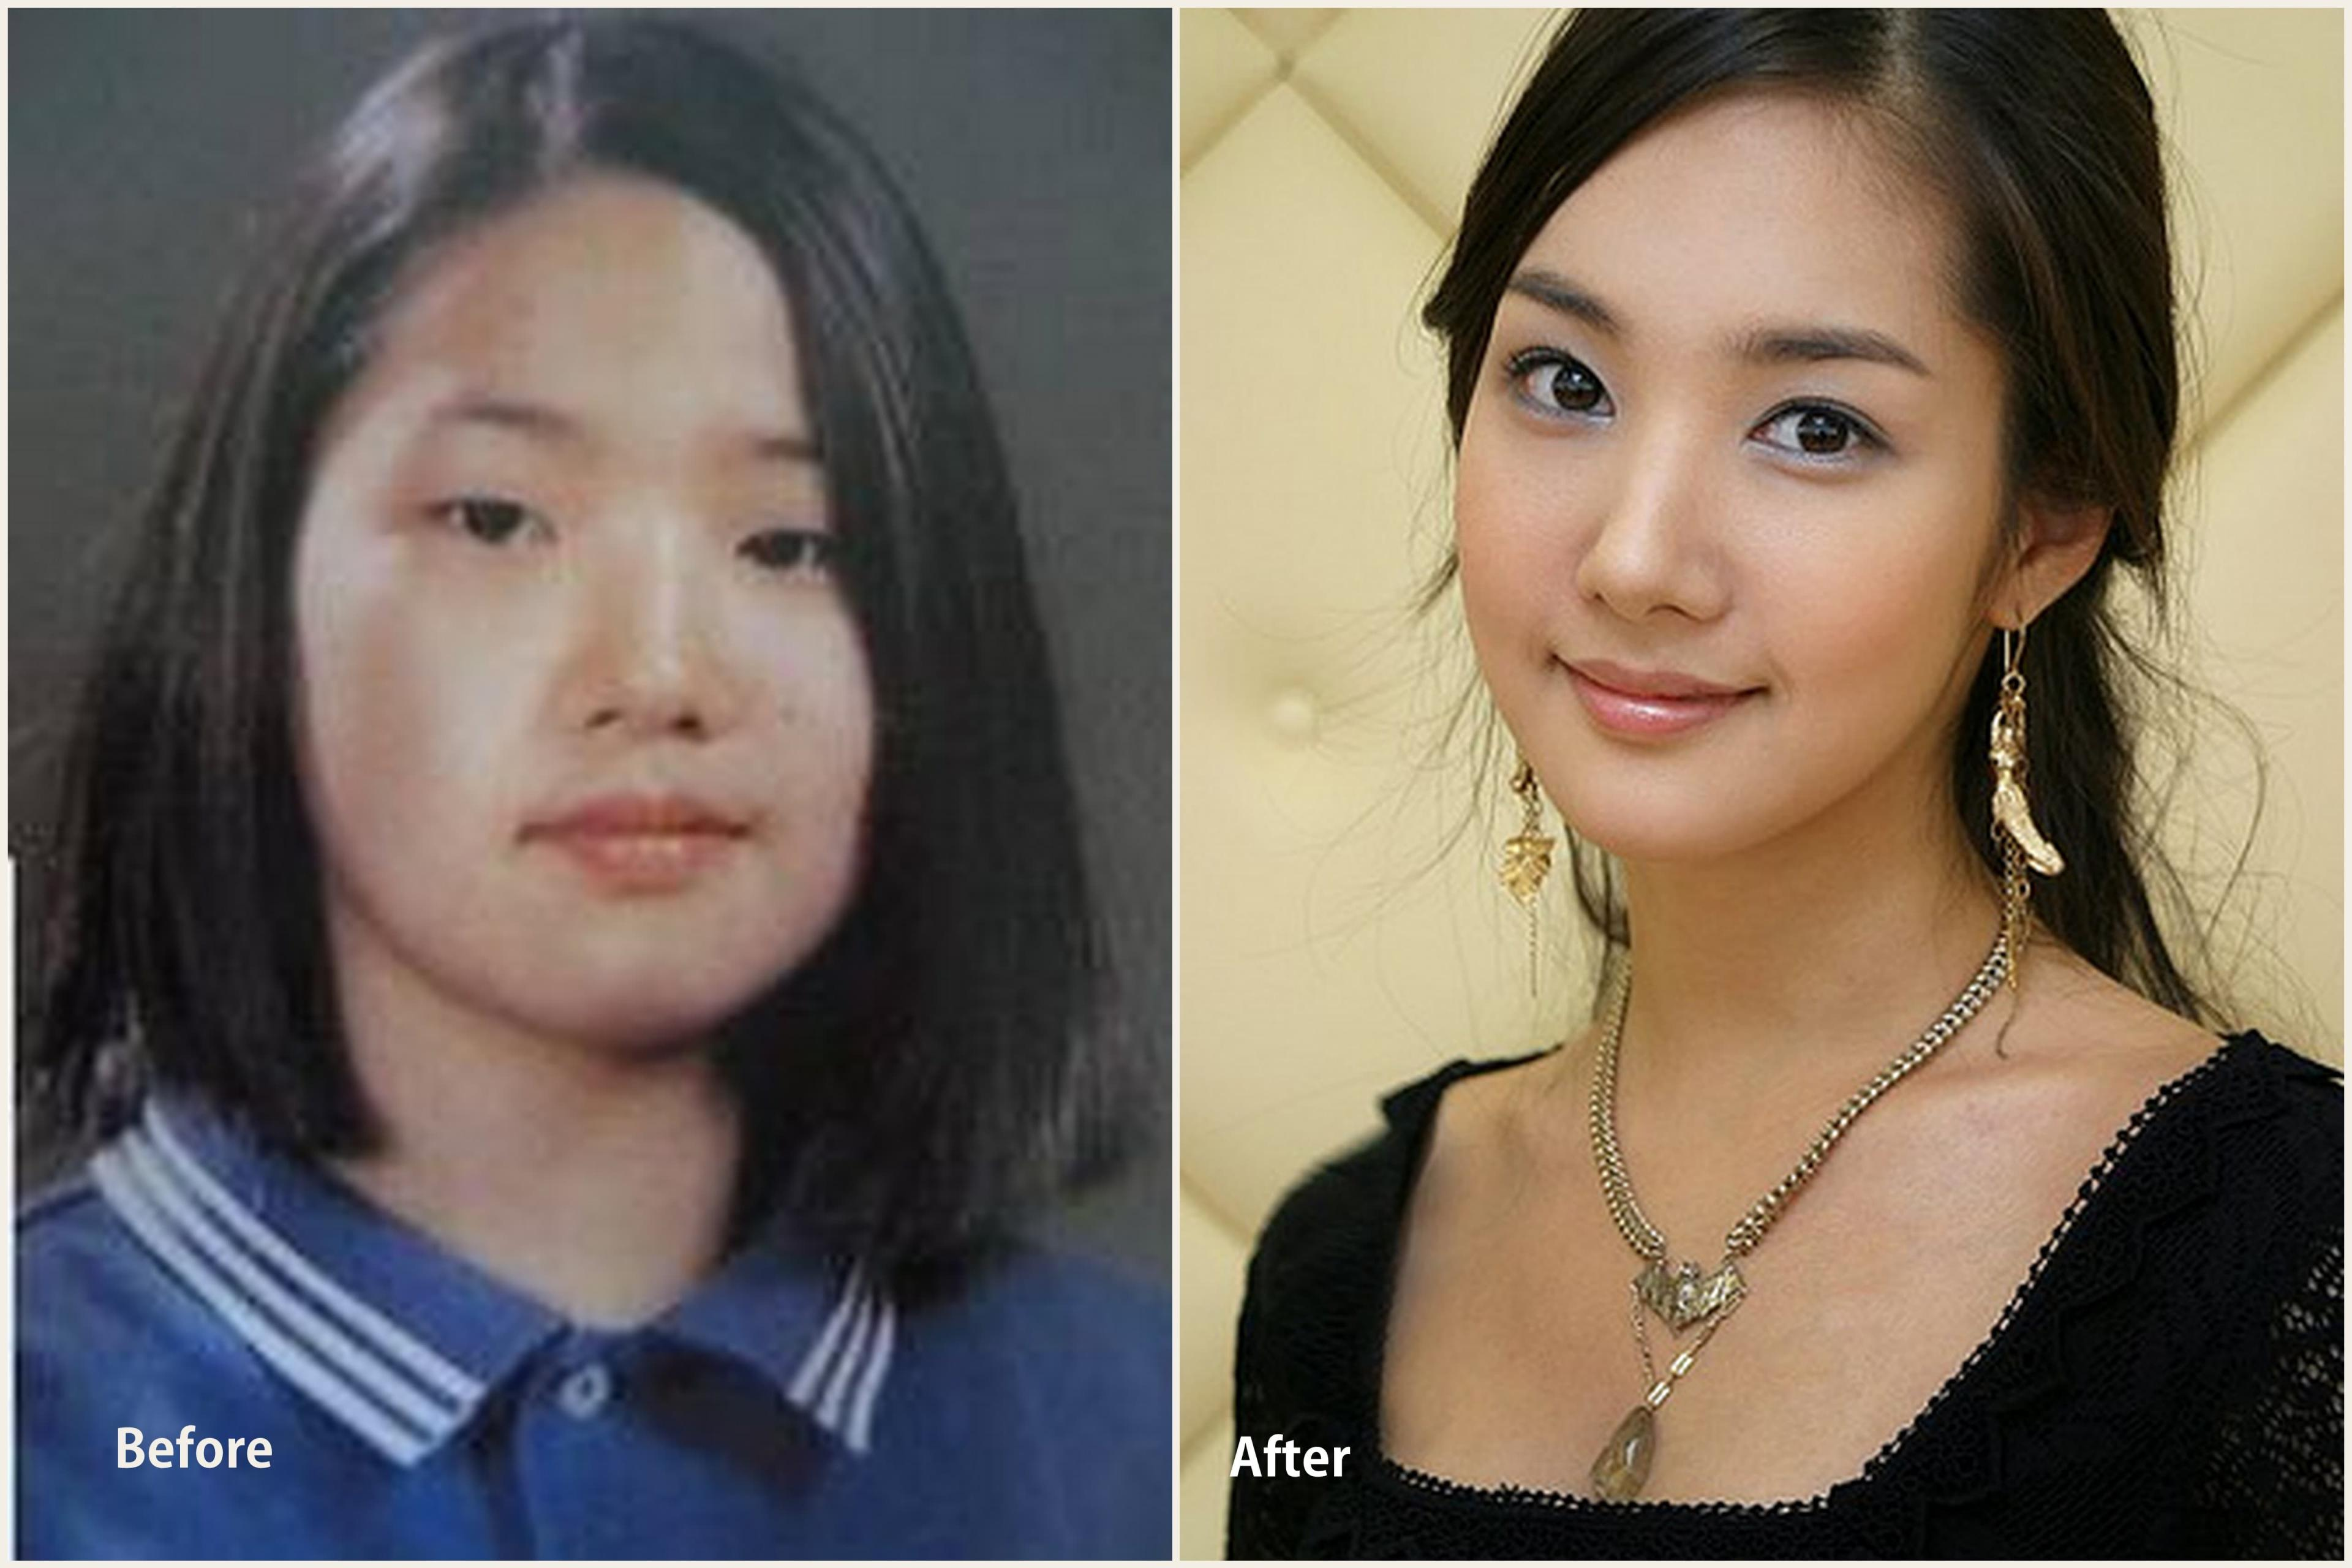 Park Shin Hye Before And After Plastic Surgery 1